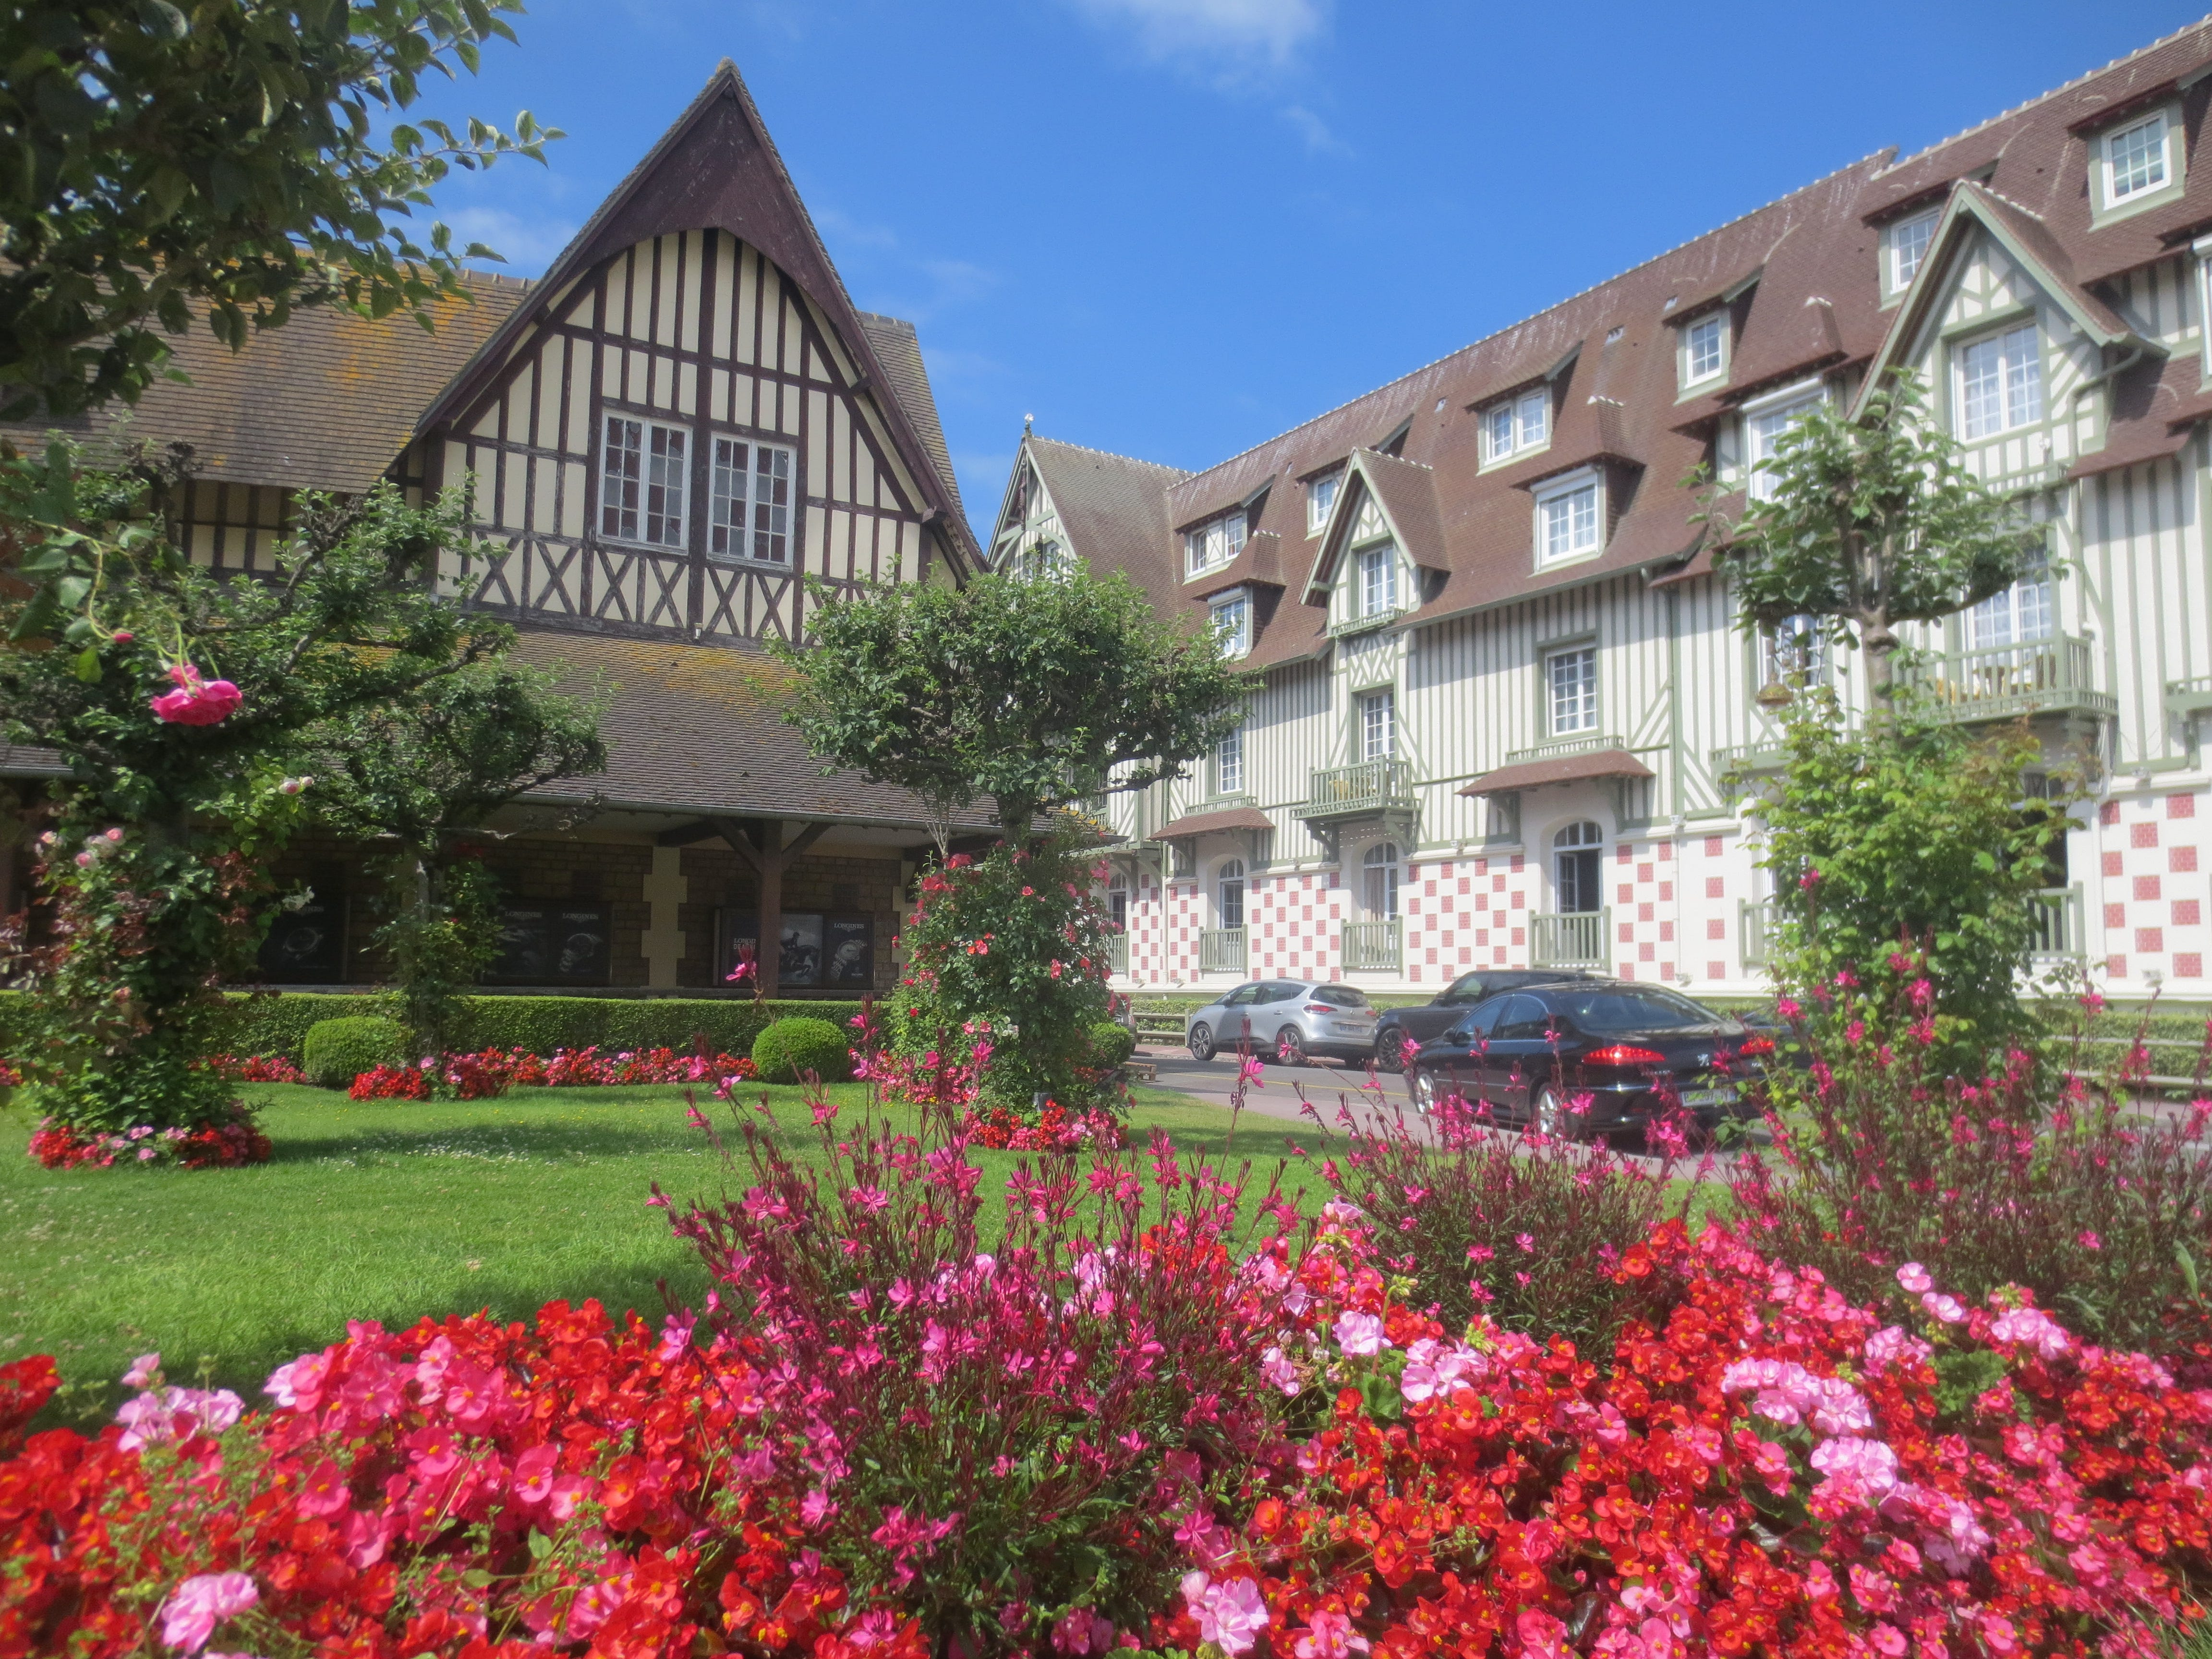 The traditional half-timbered architecture of Normandy, France, in the city of Deauville.